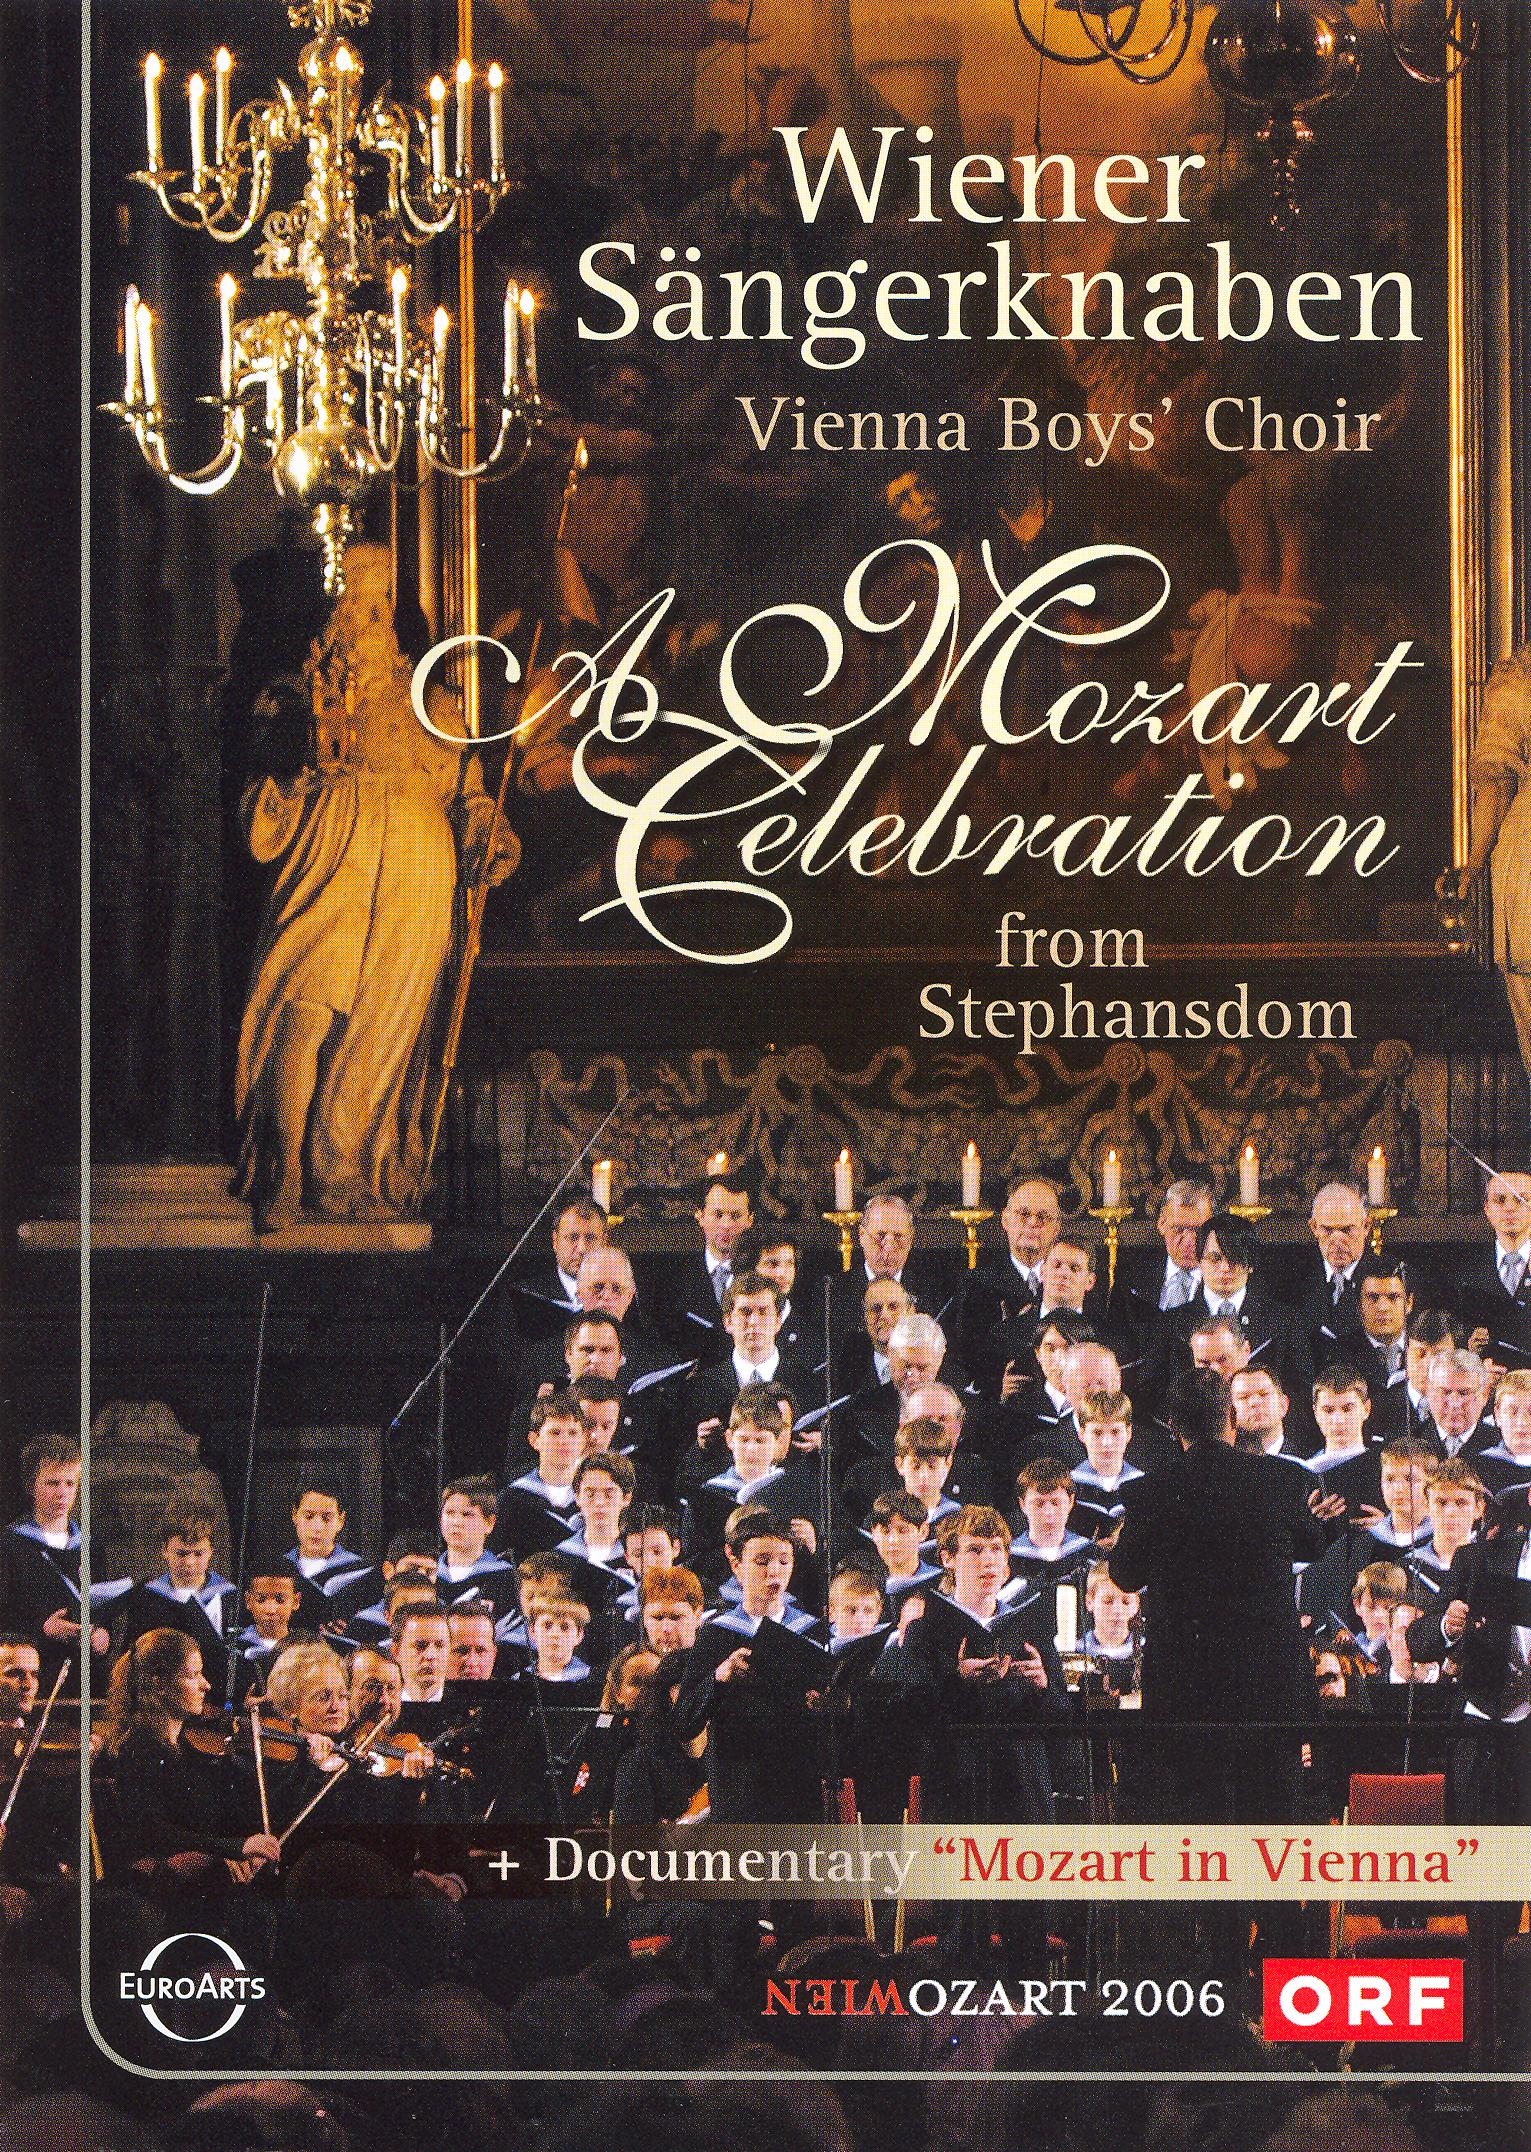 A Mozart Celebration From Stephansdom